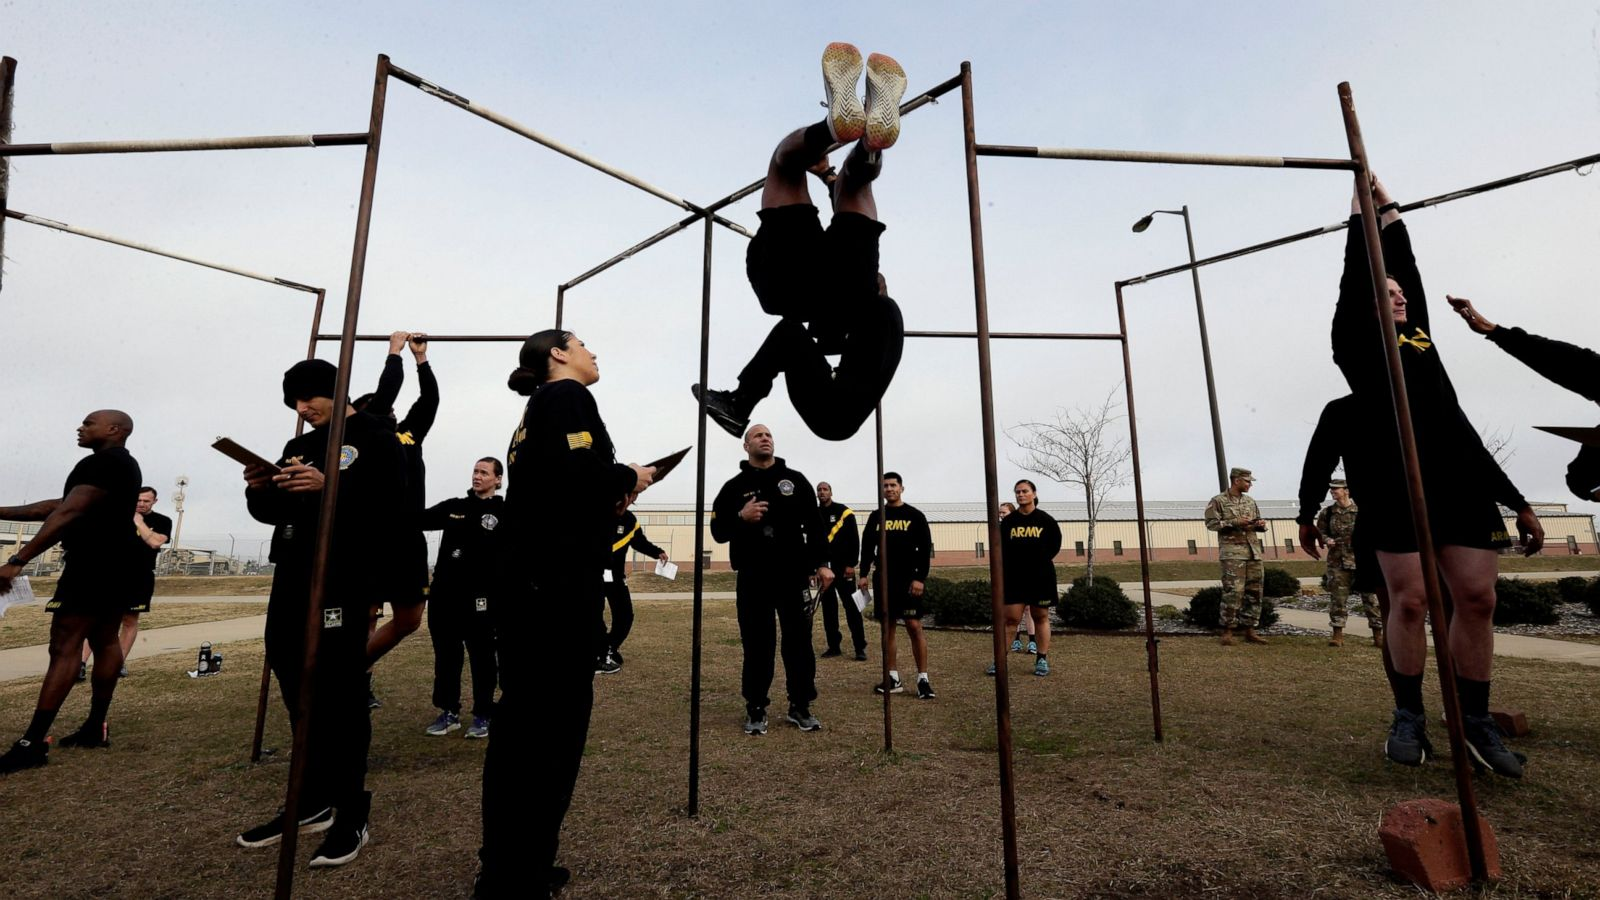 Army revamps fitness exam, kicks out leg tuck requirement